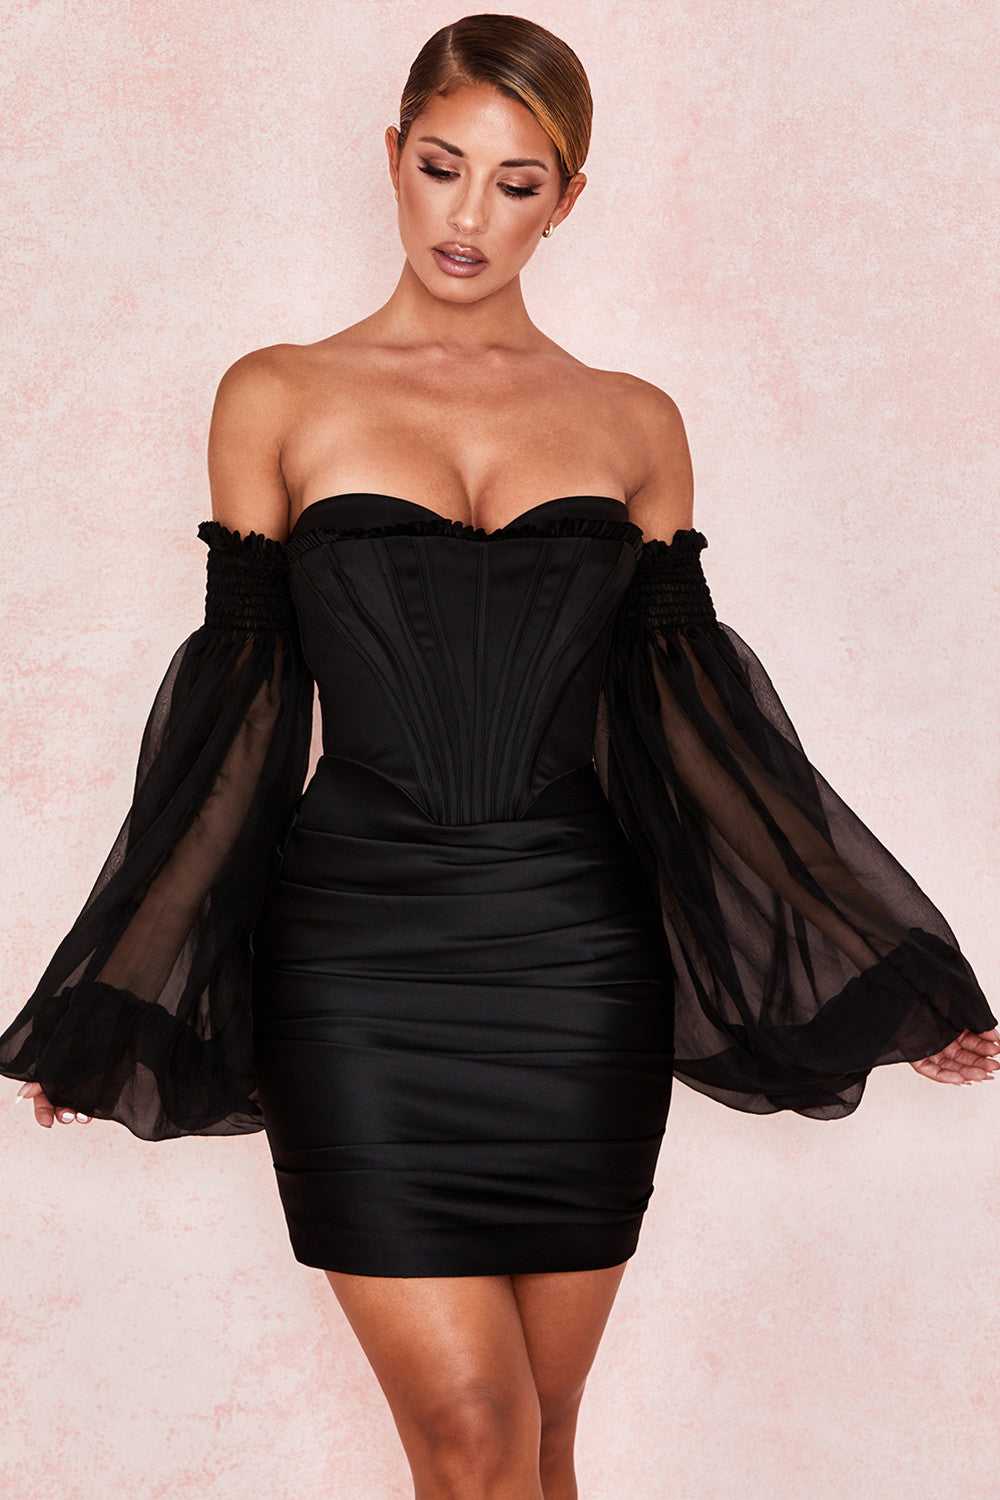 Black Satin And Chiffon Corset Dress